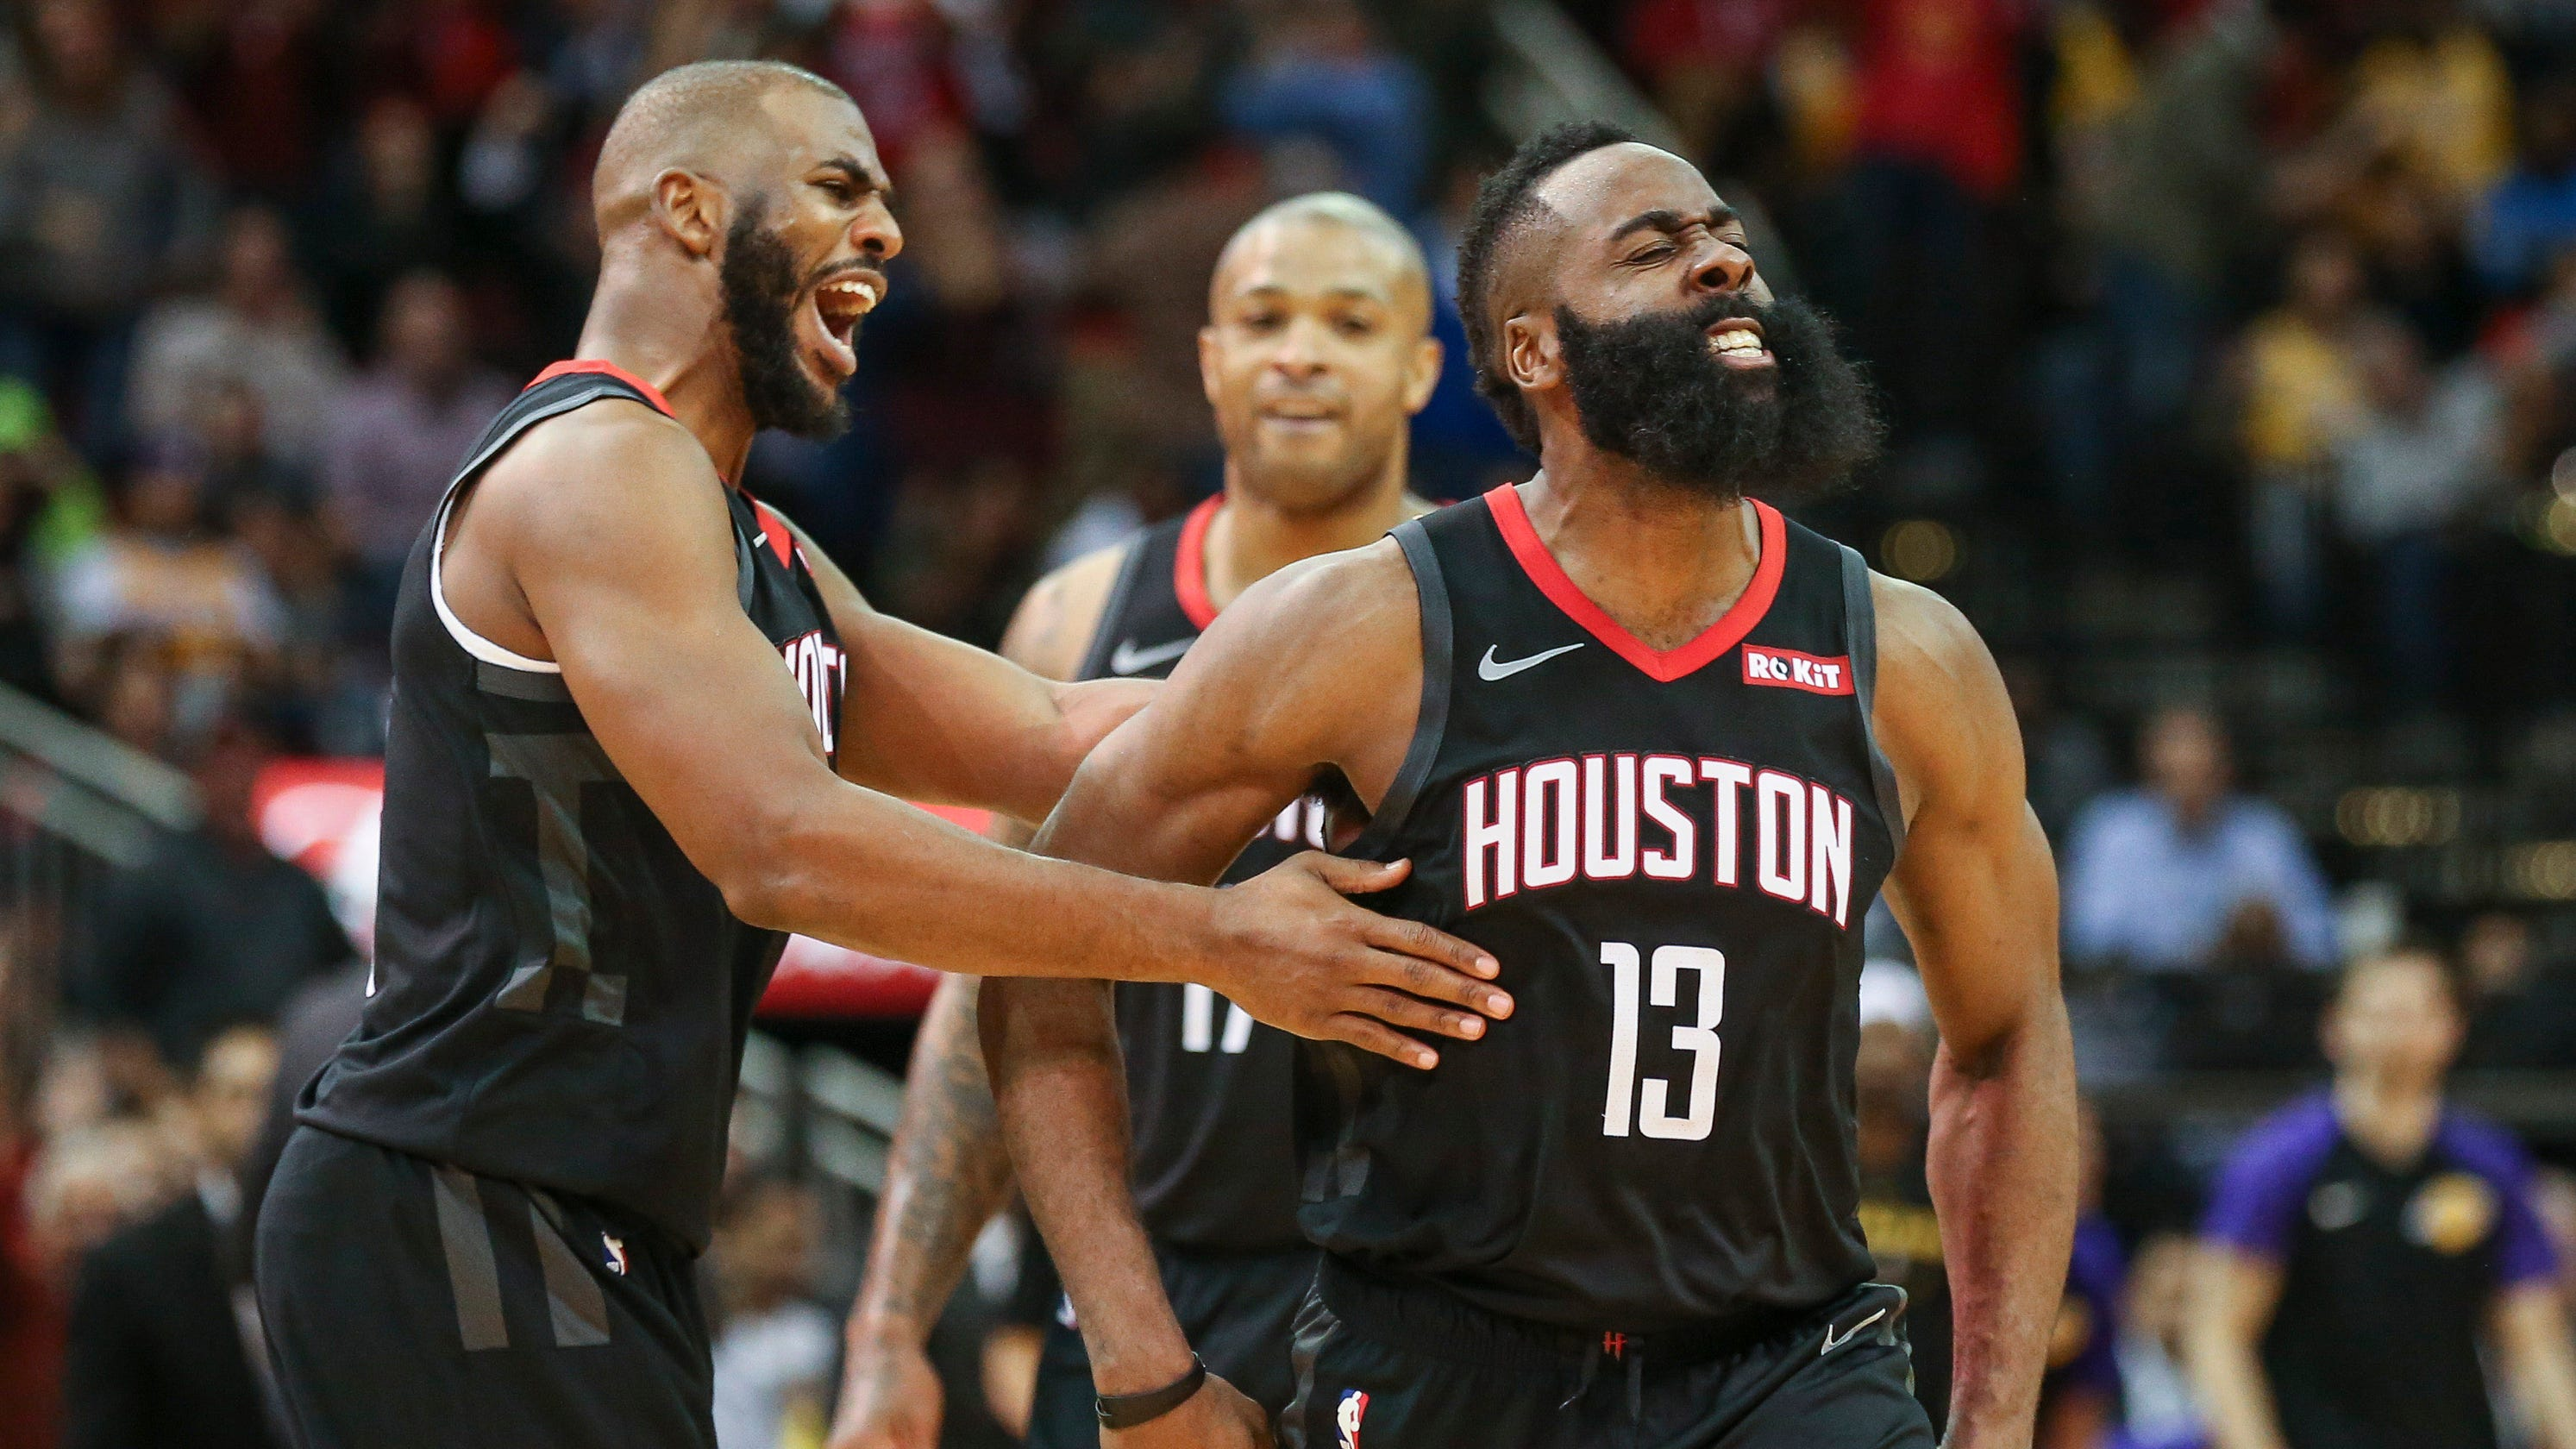 Nba Playoff Predictions Is The Warriors Run Over: NBA Playoff Predictions: Can Rockets Dethrone Warriors?